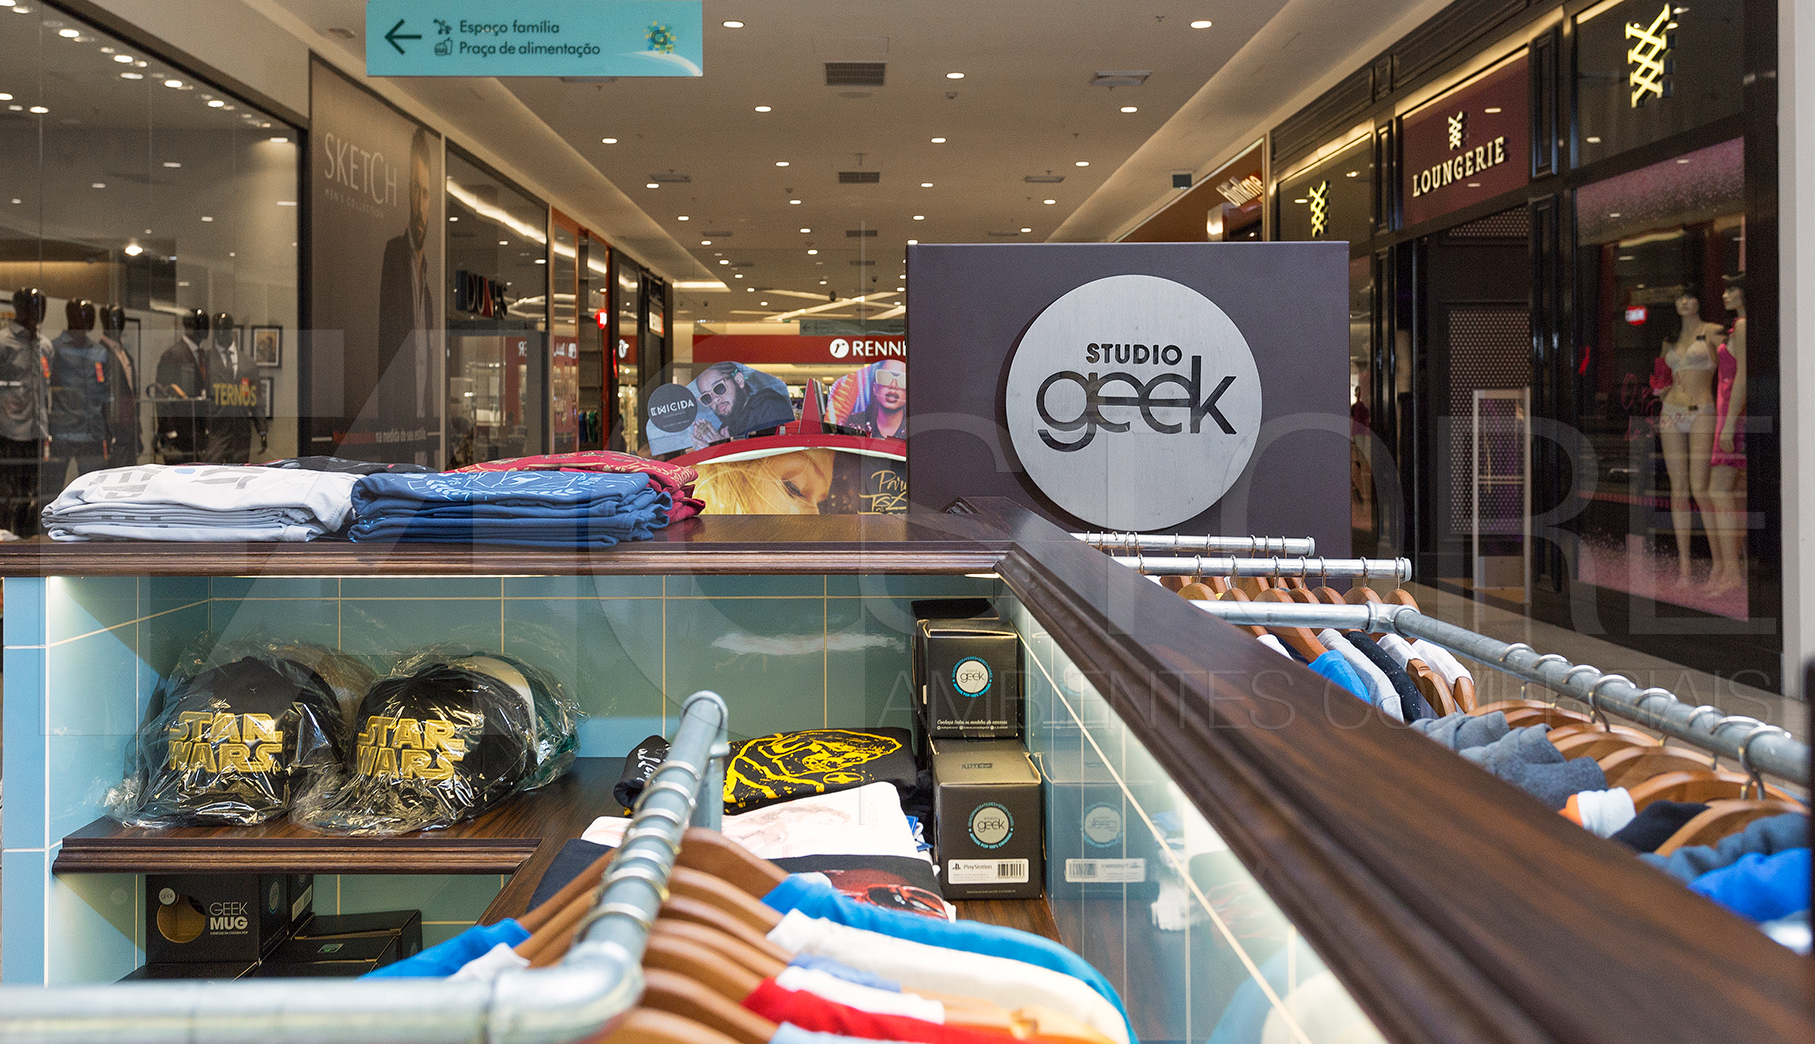 Quiosques para Shopping Studio Geek